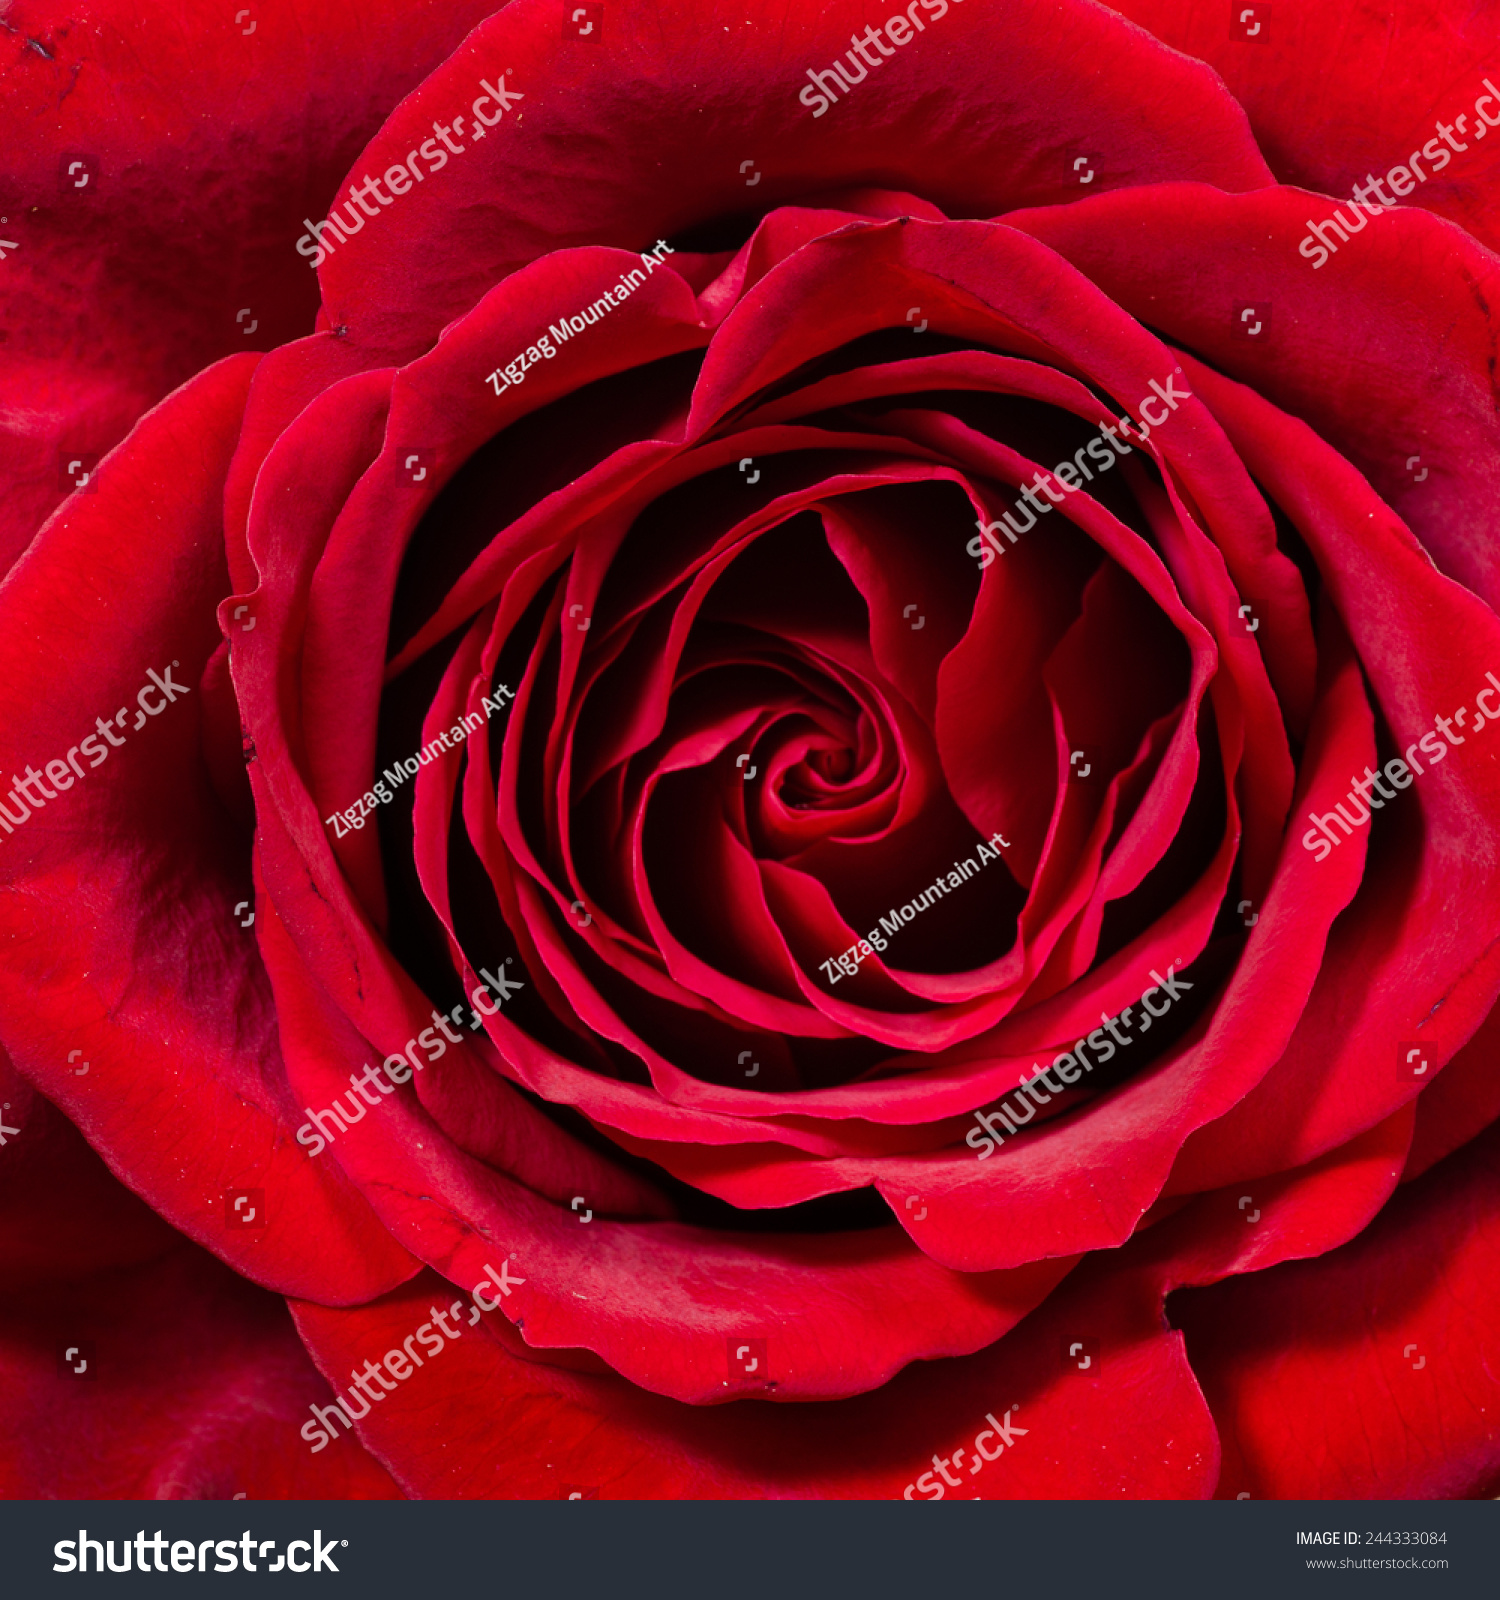 Single red rose close up showing petals stock photo for Individual rose petals